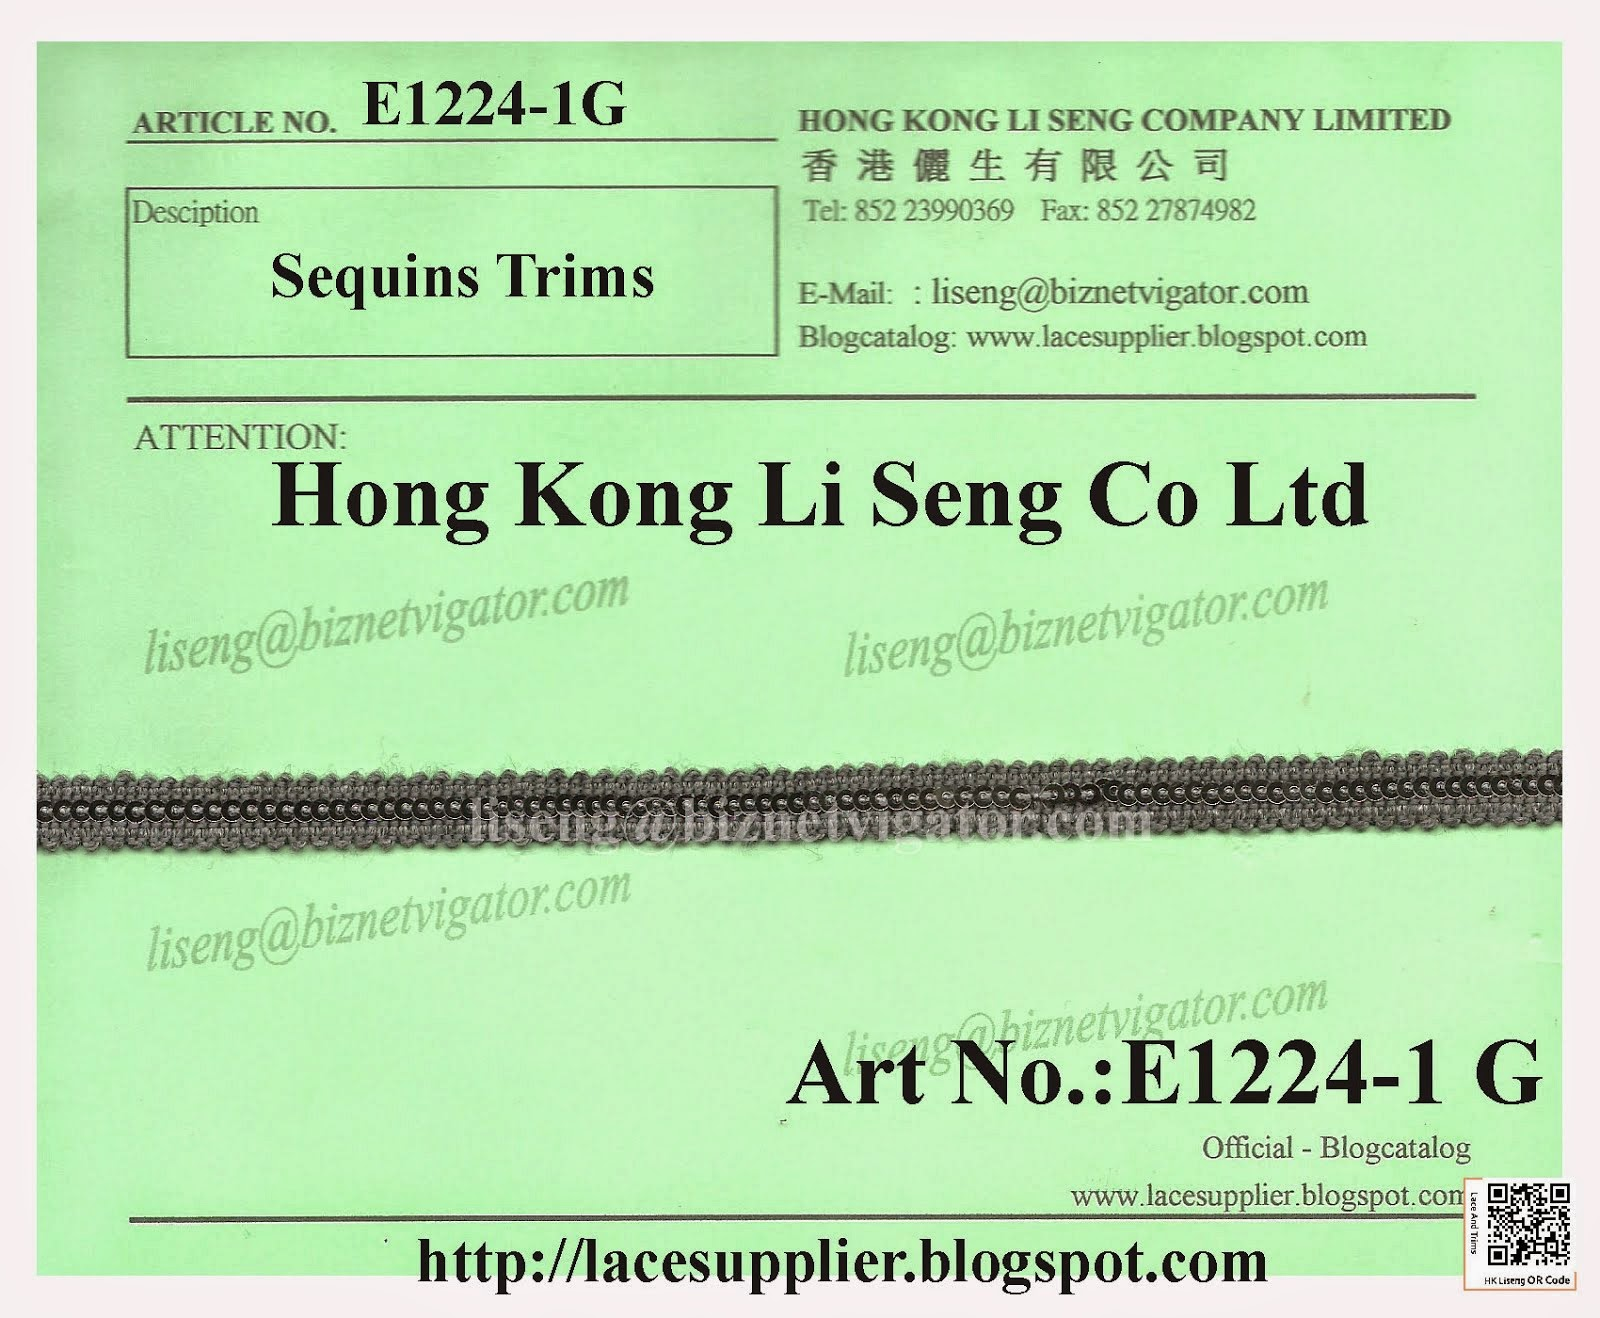 Sequins Trims Manufacturer Wholesale Supplier - Hong Kong Li Seng Co Ltd